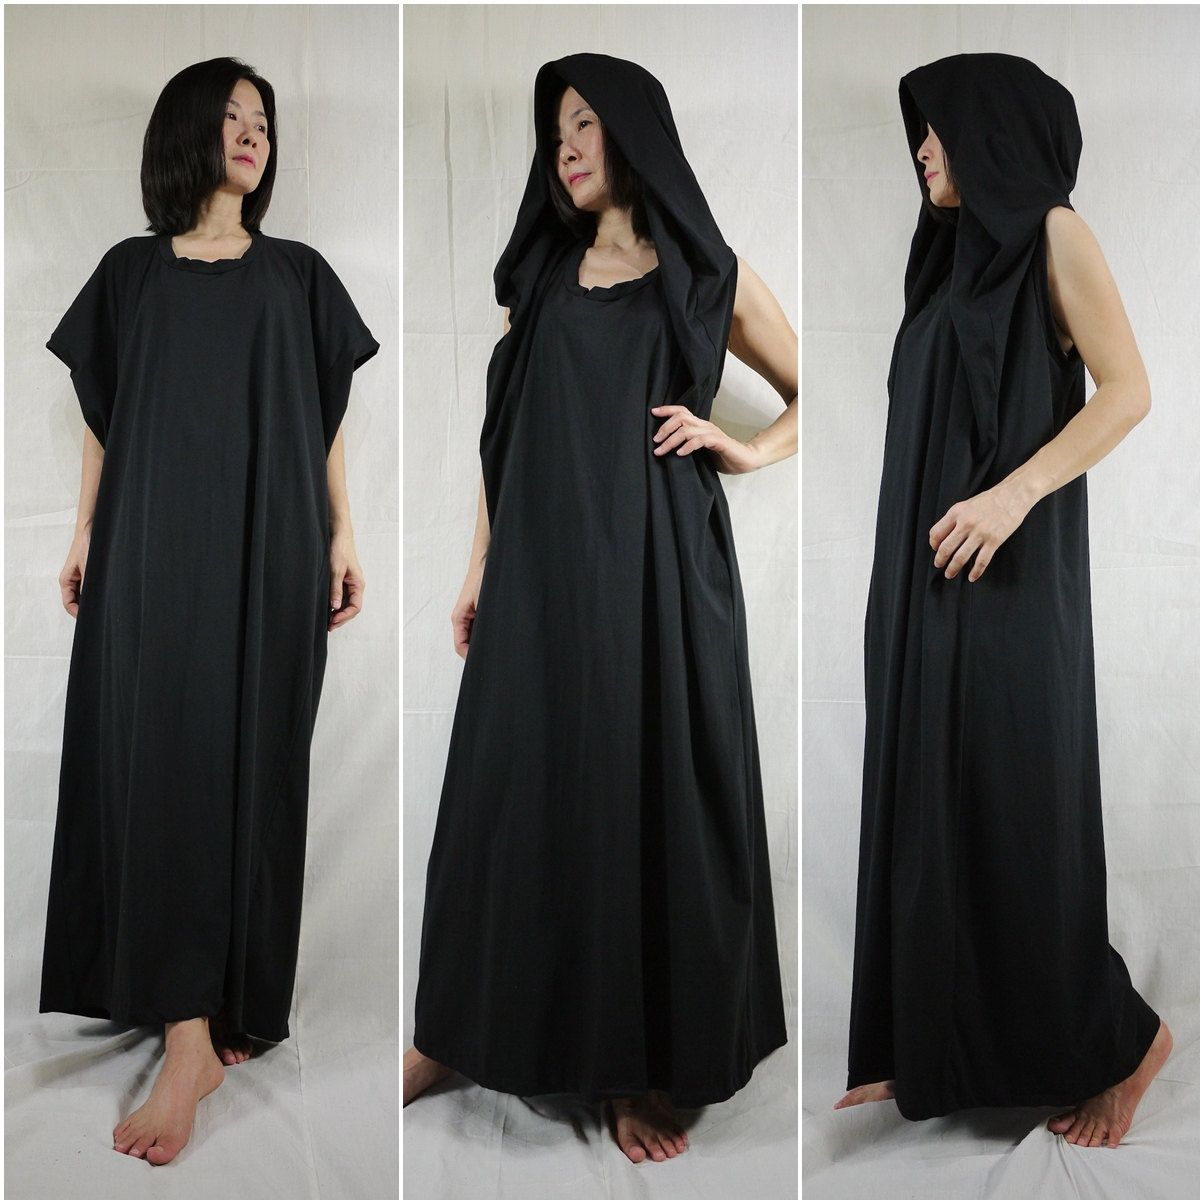 Funky Oversize Hood Cape Maxi Black Cotton Jersey Dress by